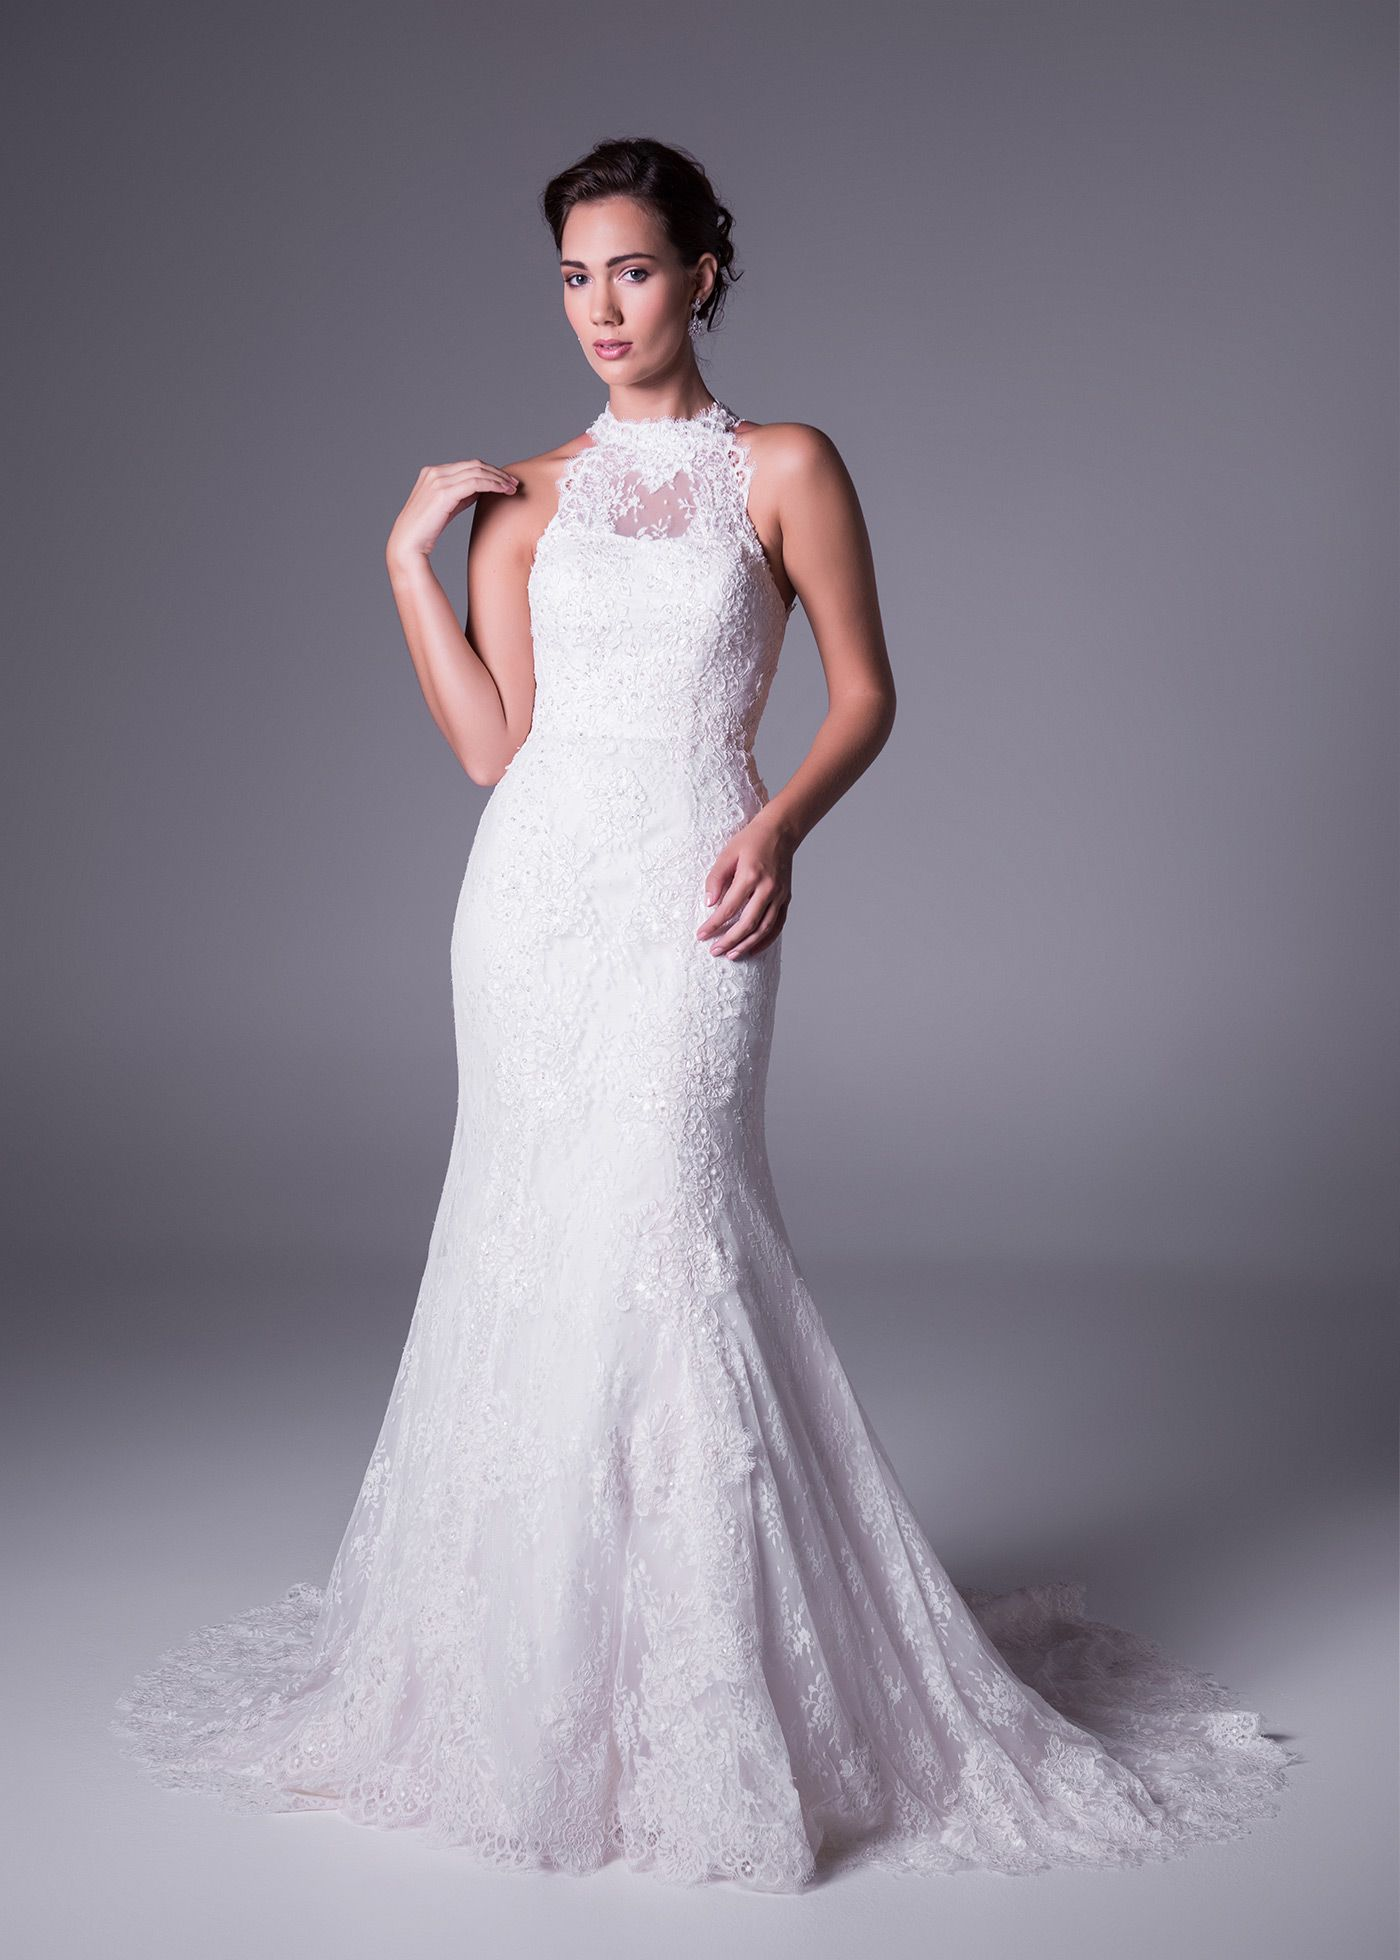 Trend: Turtle Necks  Following on the popular high-neckline trend, turtle neck wedding dress designs offer plenty of warmth for winter weddings and the ultimate in chic sophistication and something different for your wedding day look. We love this Oleg Cassini all-over-lace, fit and flare style wedding gown. Available in Whisper Pink and Ivory (style: CWG666). Click to View.